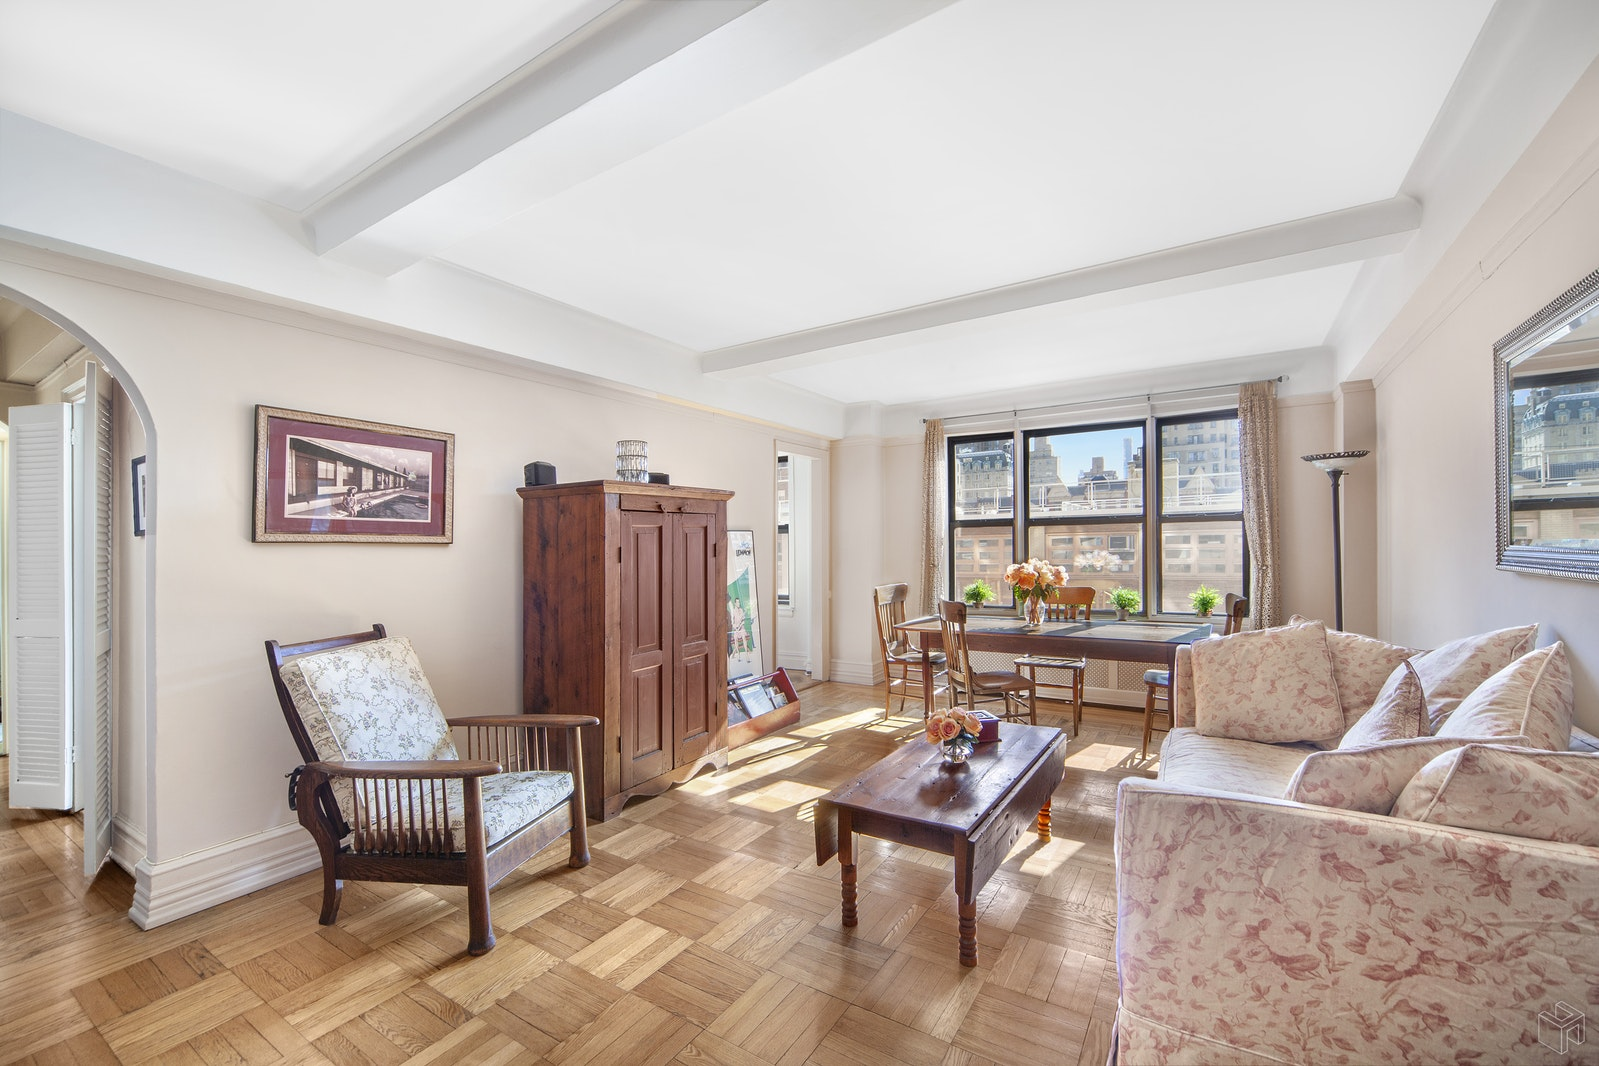 35 West 92nd Street 4d, Upper West Side, NYC, 10025, $699,000, Property For Sale, Halstead Real Estate, Photo 1